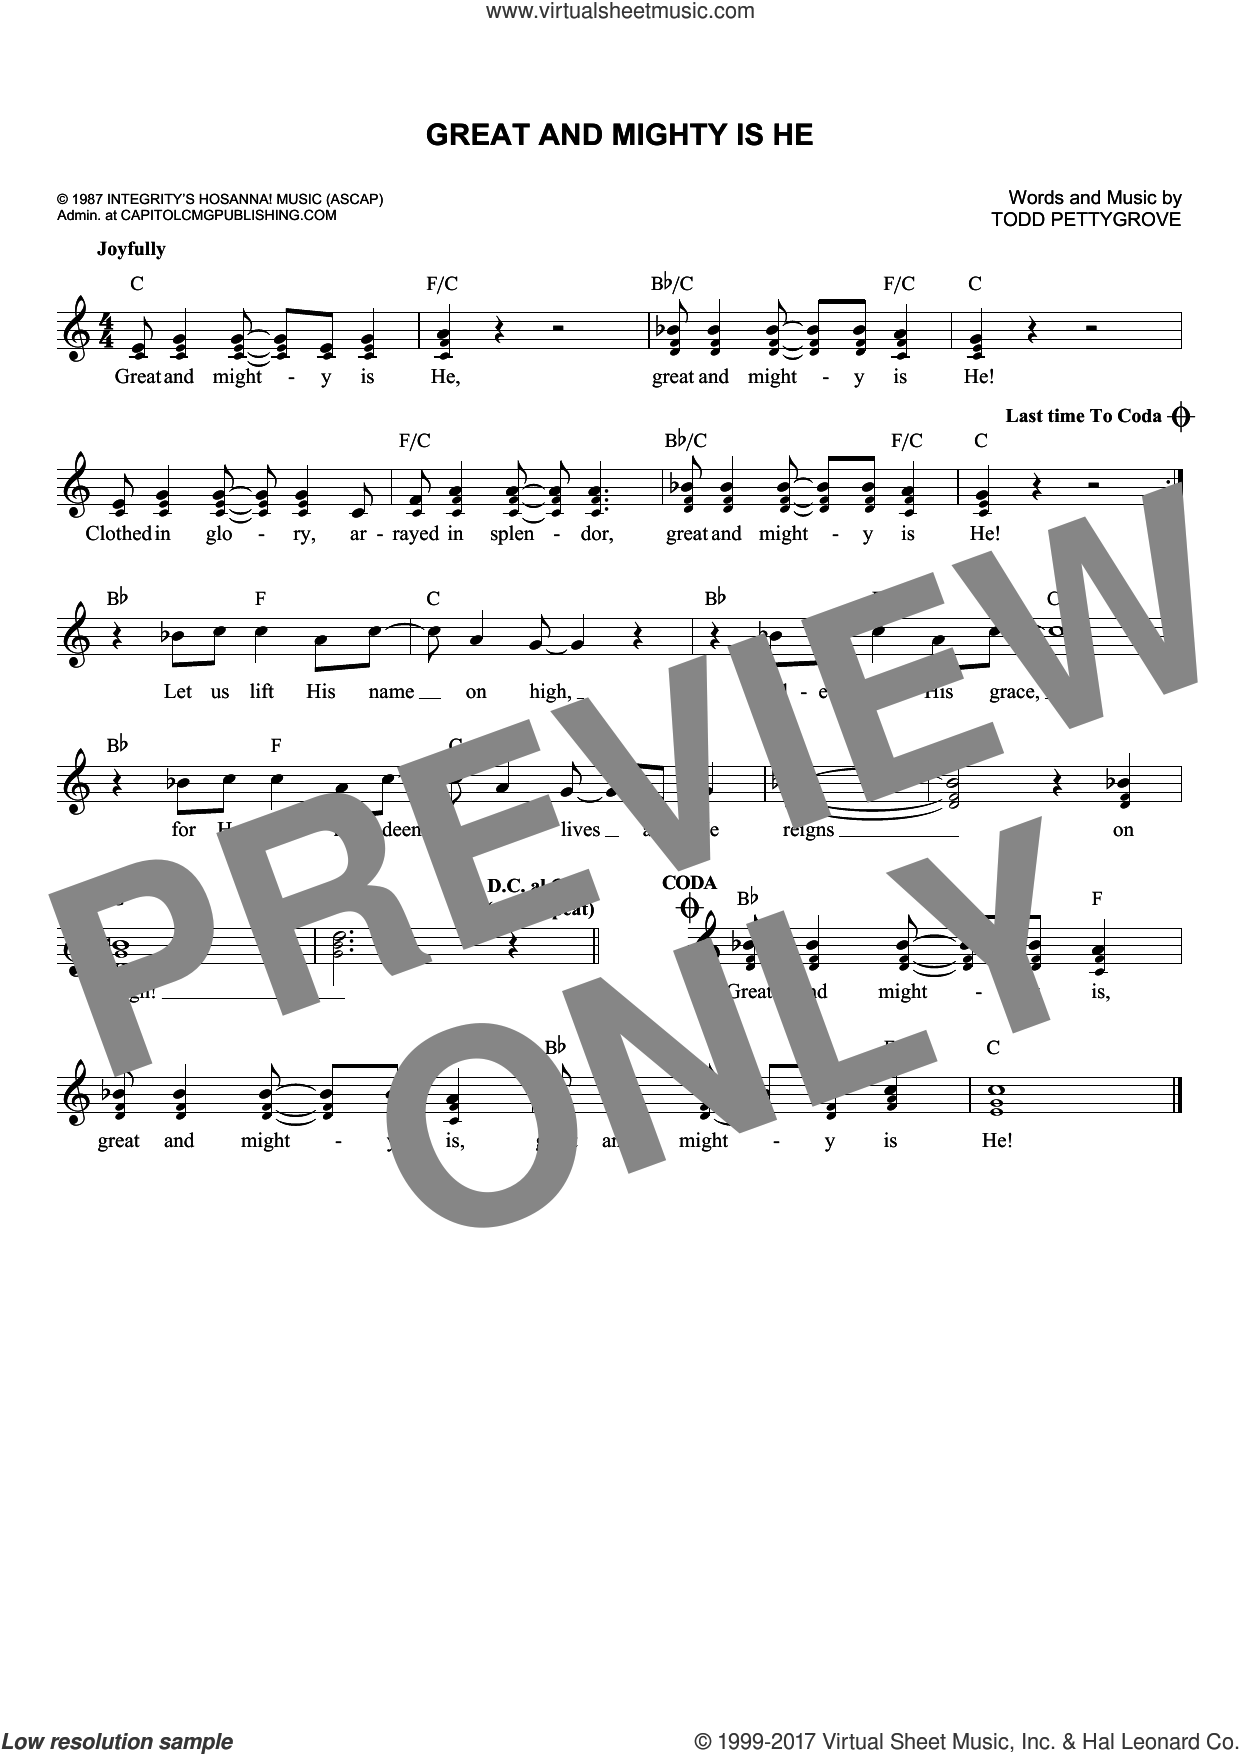 Great And Mighty Is He sheet music for voice and other instruments (fake book) by Todd Pettygrove, intermediate. Score Image Preview.